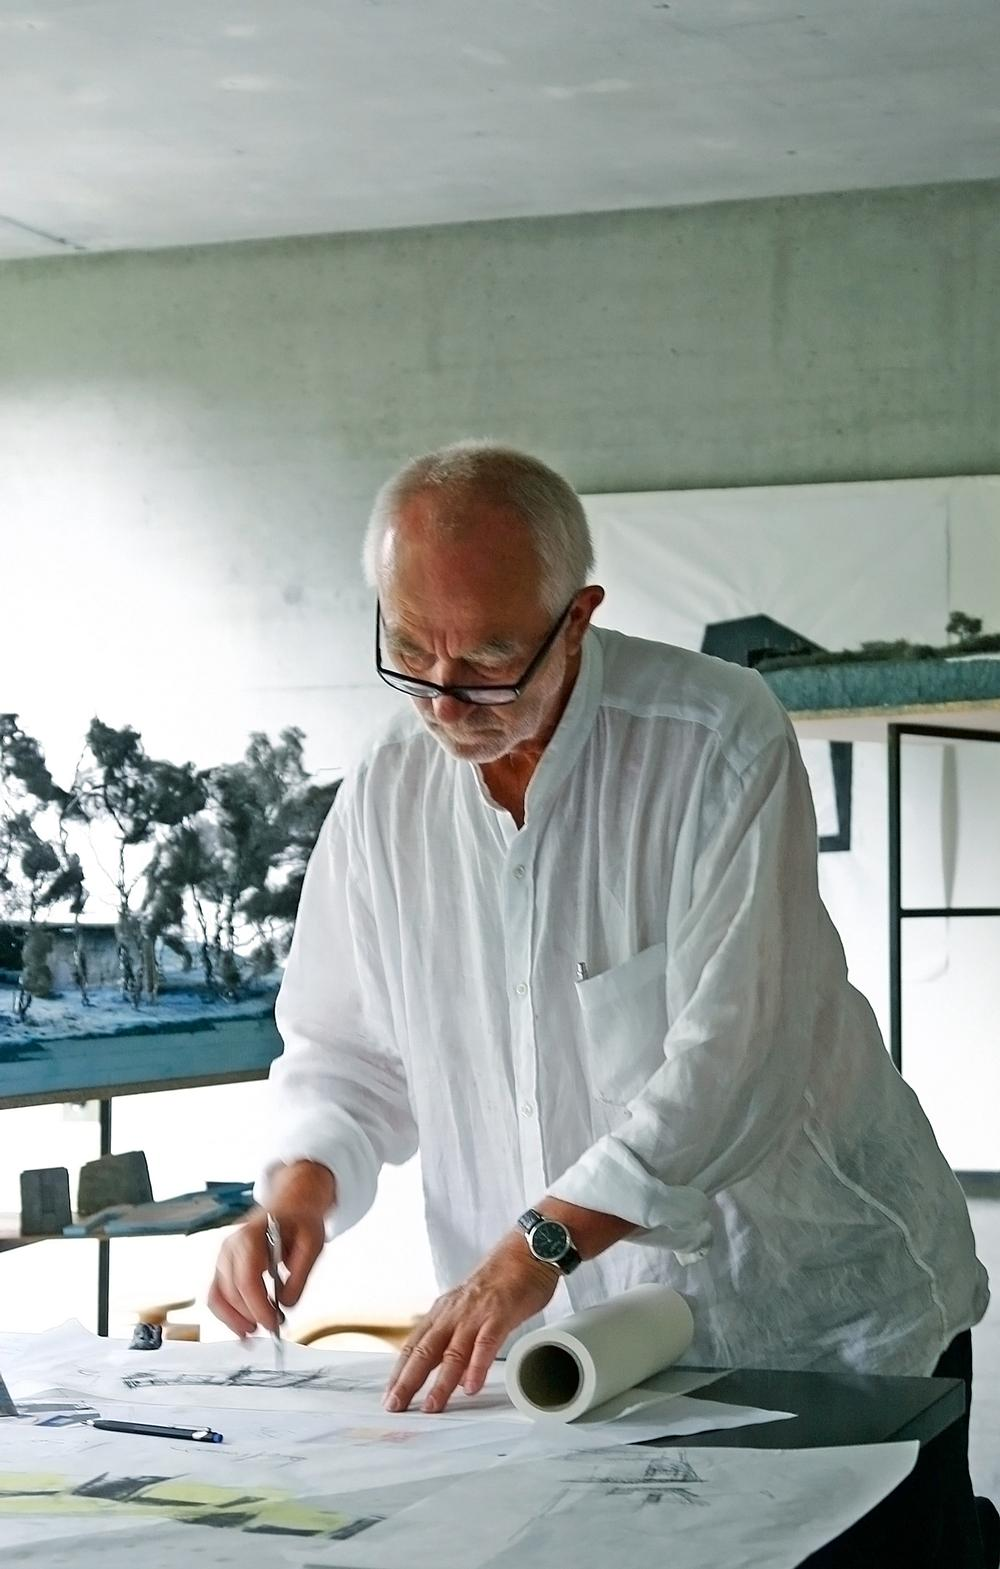 Zumthor works from his studio in Haldenstein, which he designed in 1986. / Photo courtesy of Peter Zumthor & Partner